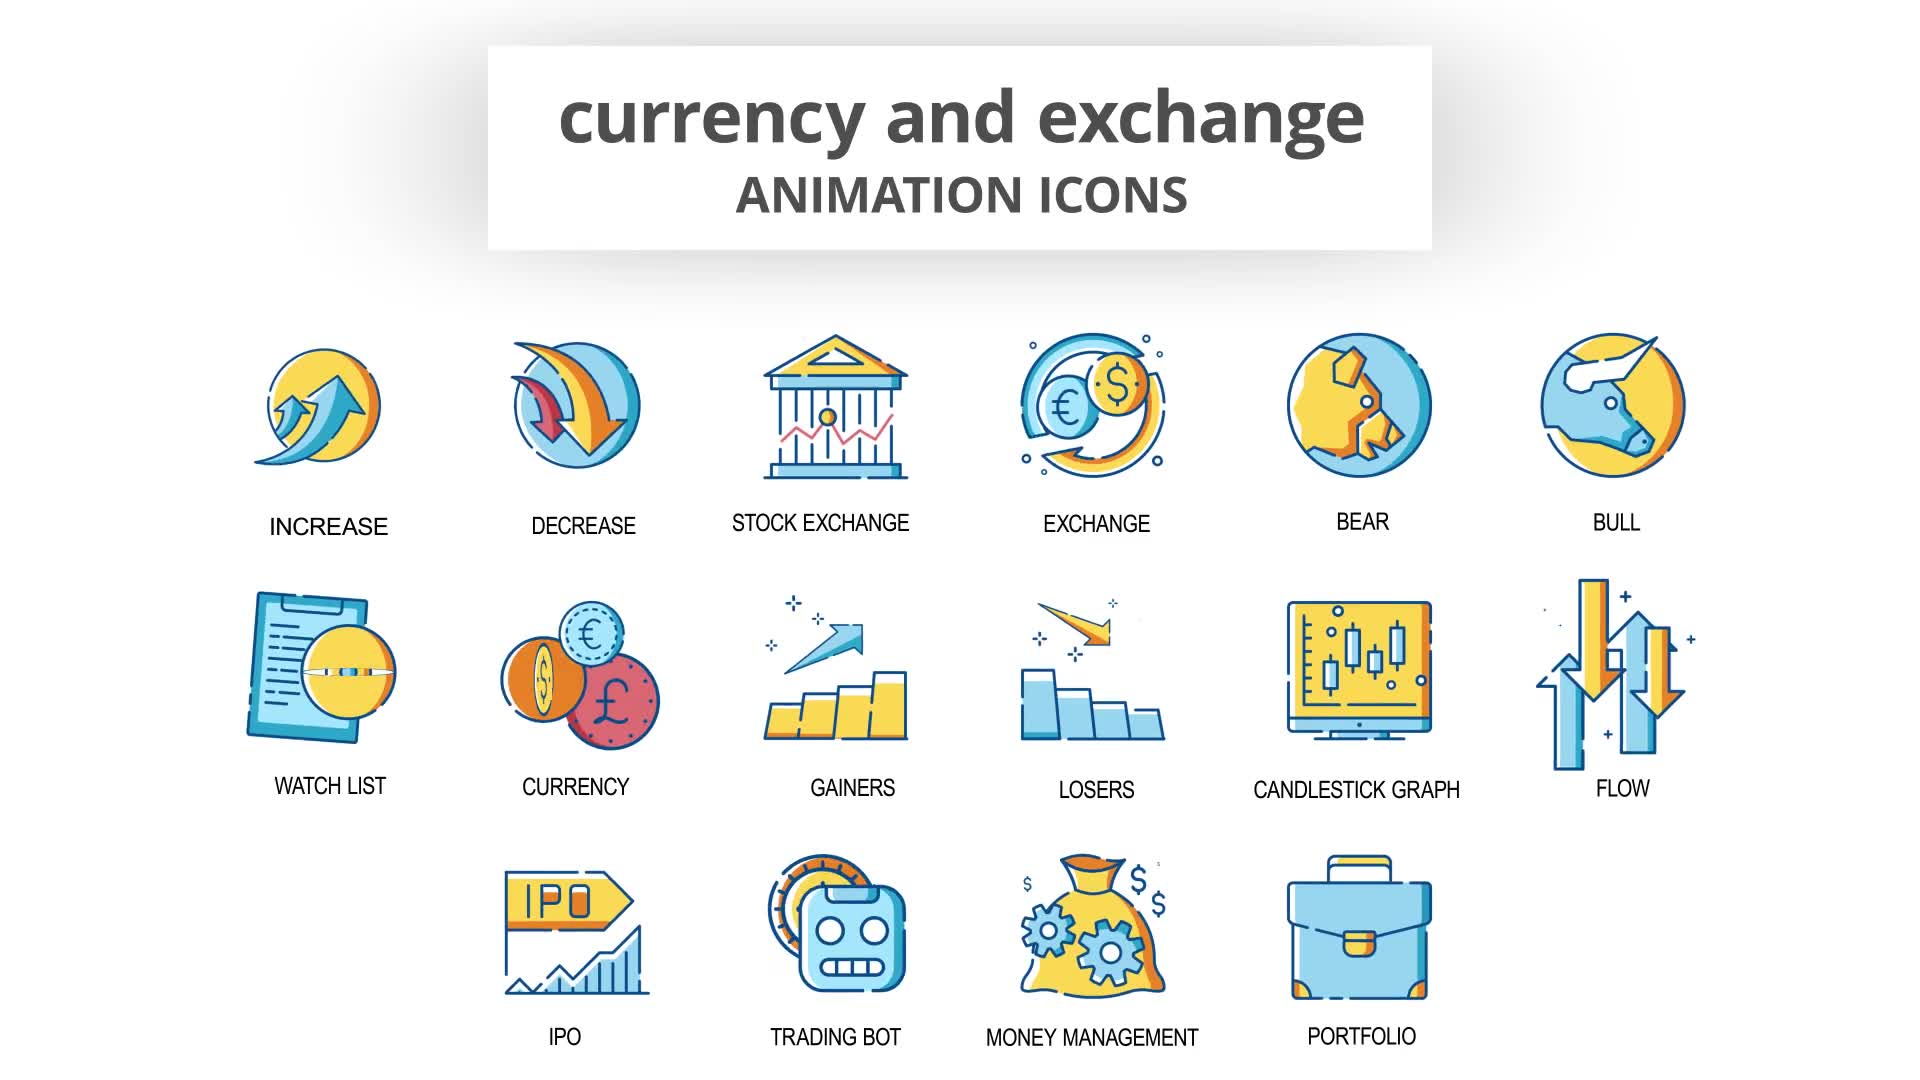 Currency & Exchange Animation Icons Videohive 30260825 After Effects Image 7